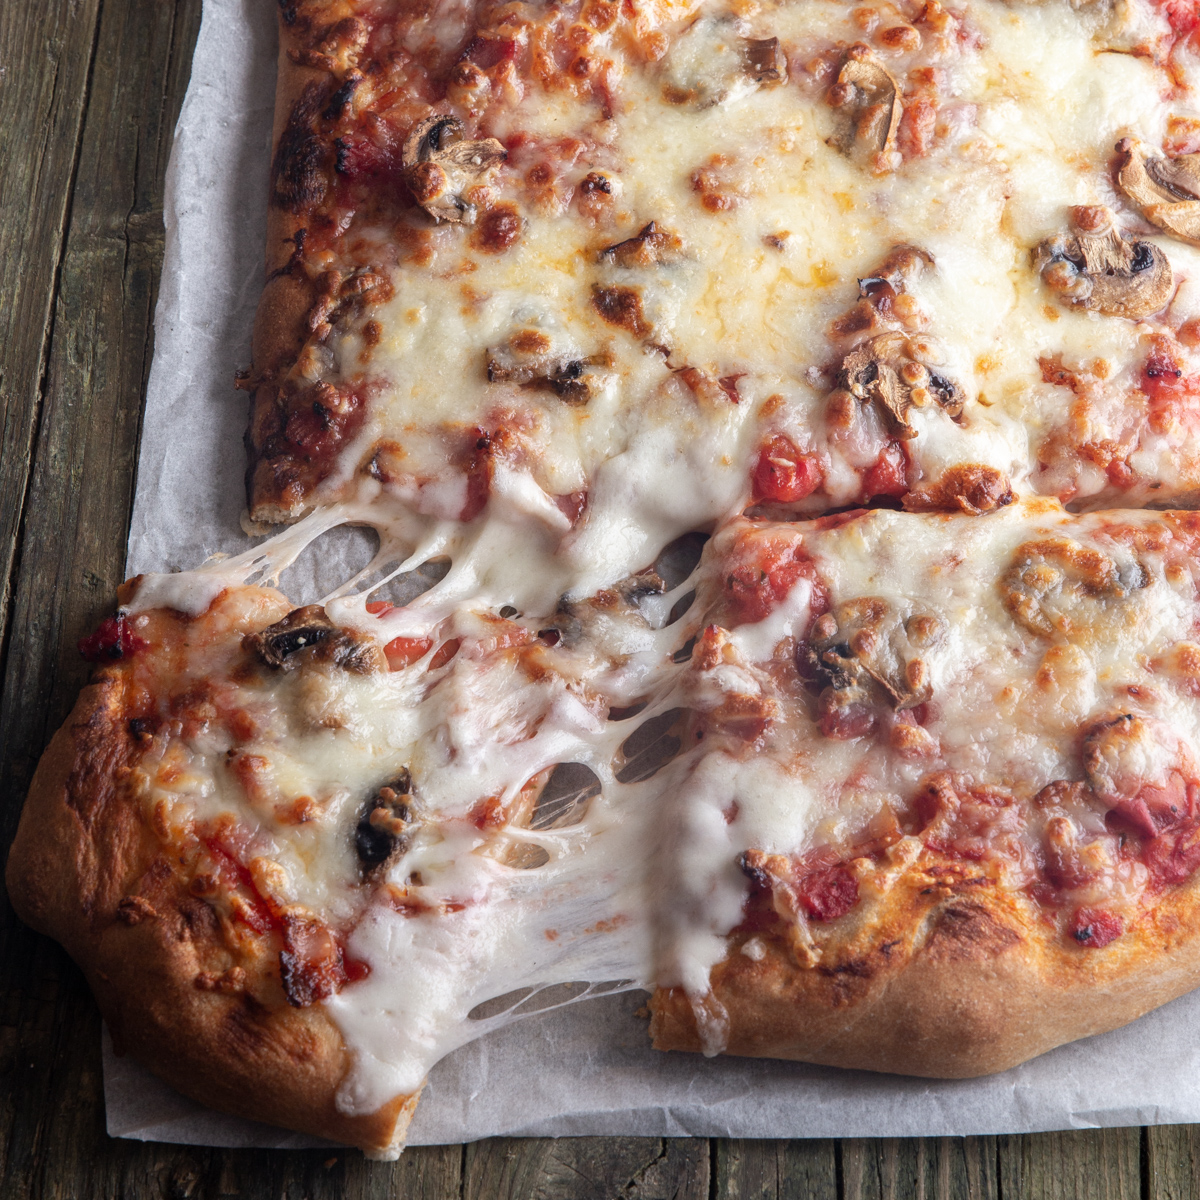 pizza on parchment paper with a slice cut.